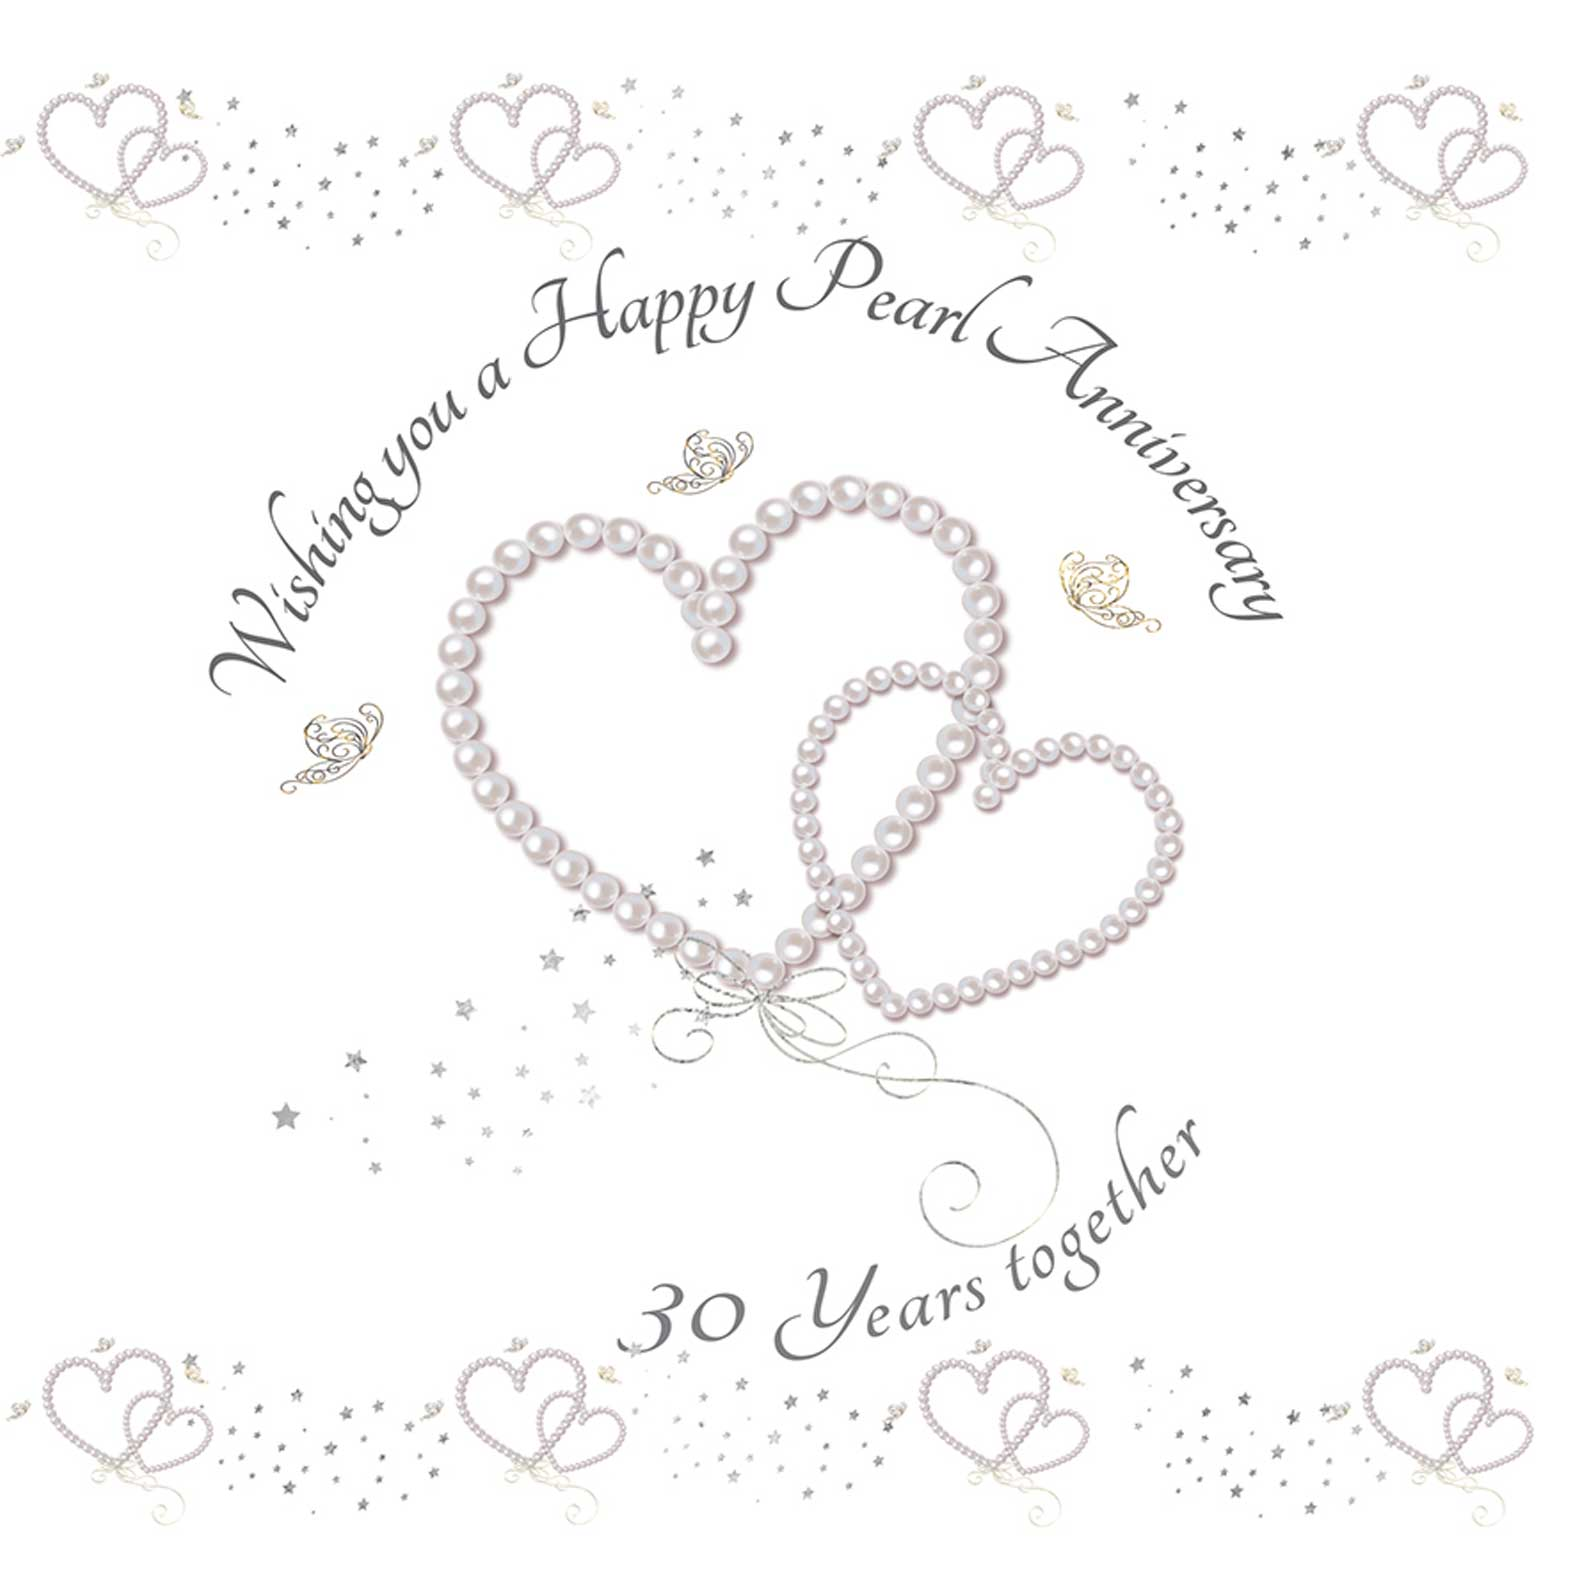 Wishing you a Happy Pearl Anniversary Greeting Card